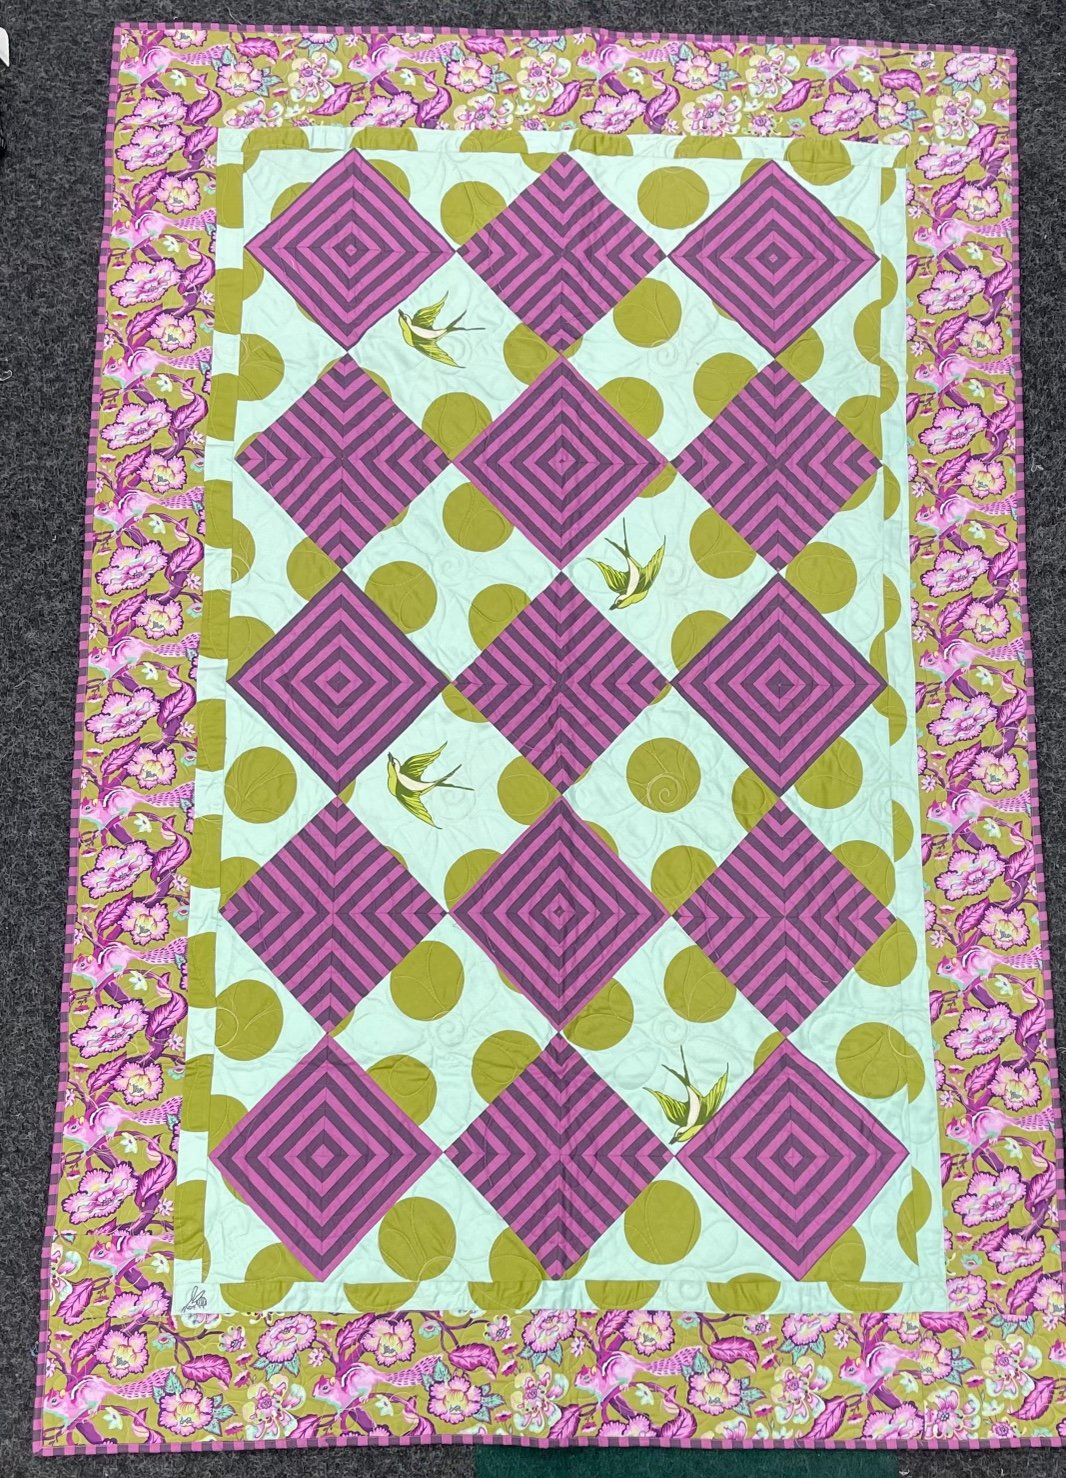 Tula Quilt Sleepy Squirrel with Free Fall Backing 50 X 74